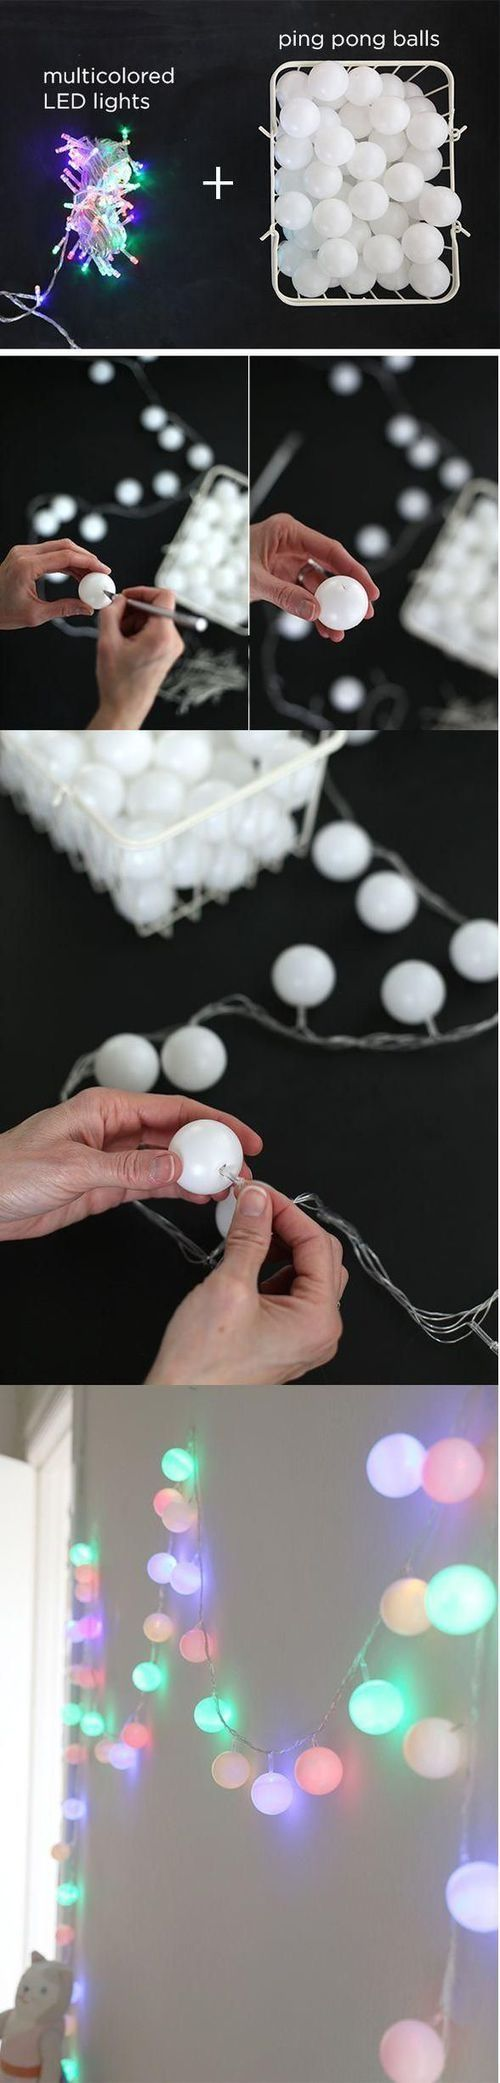 DIY Multicolored LED Light Decorations. It's an easy craft idea. Reuse ping pong balls/home crafts/recycle craft/decor refurbished/crafts for teens/DIY decorations